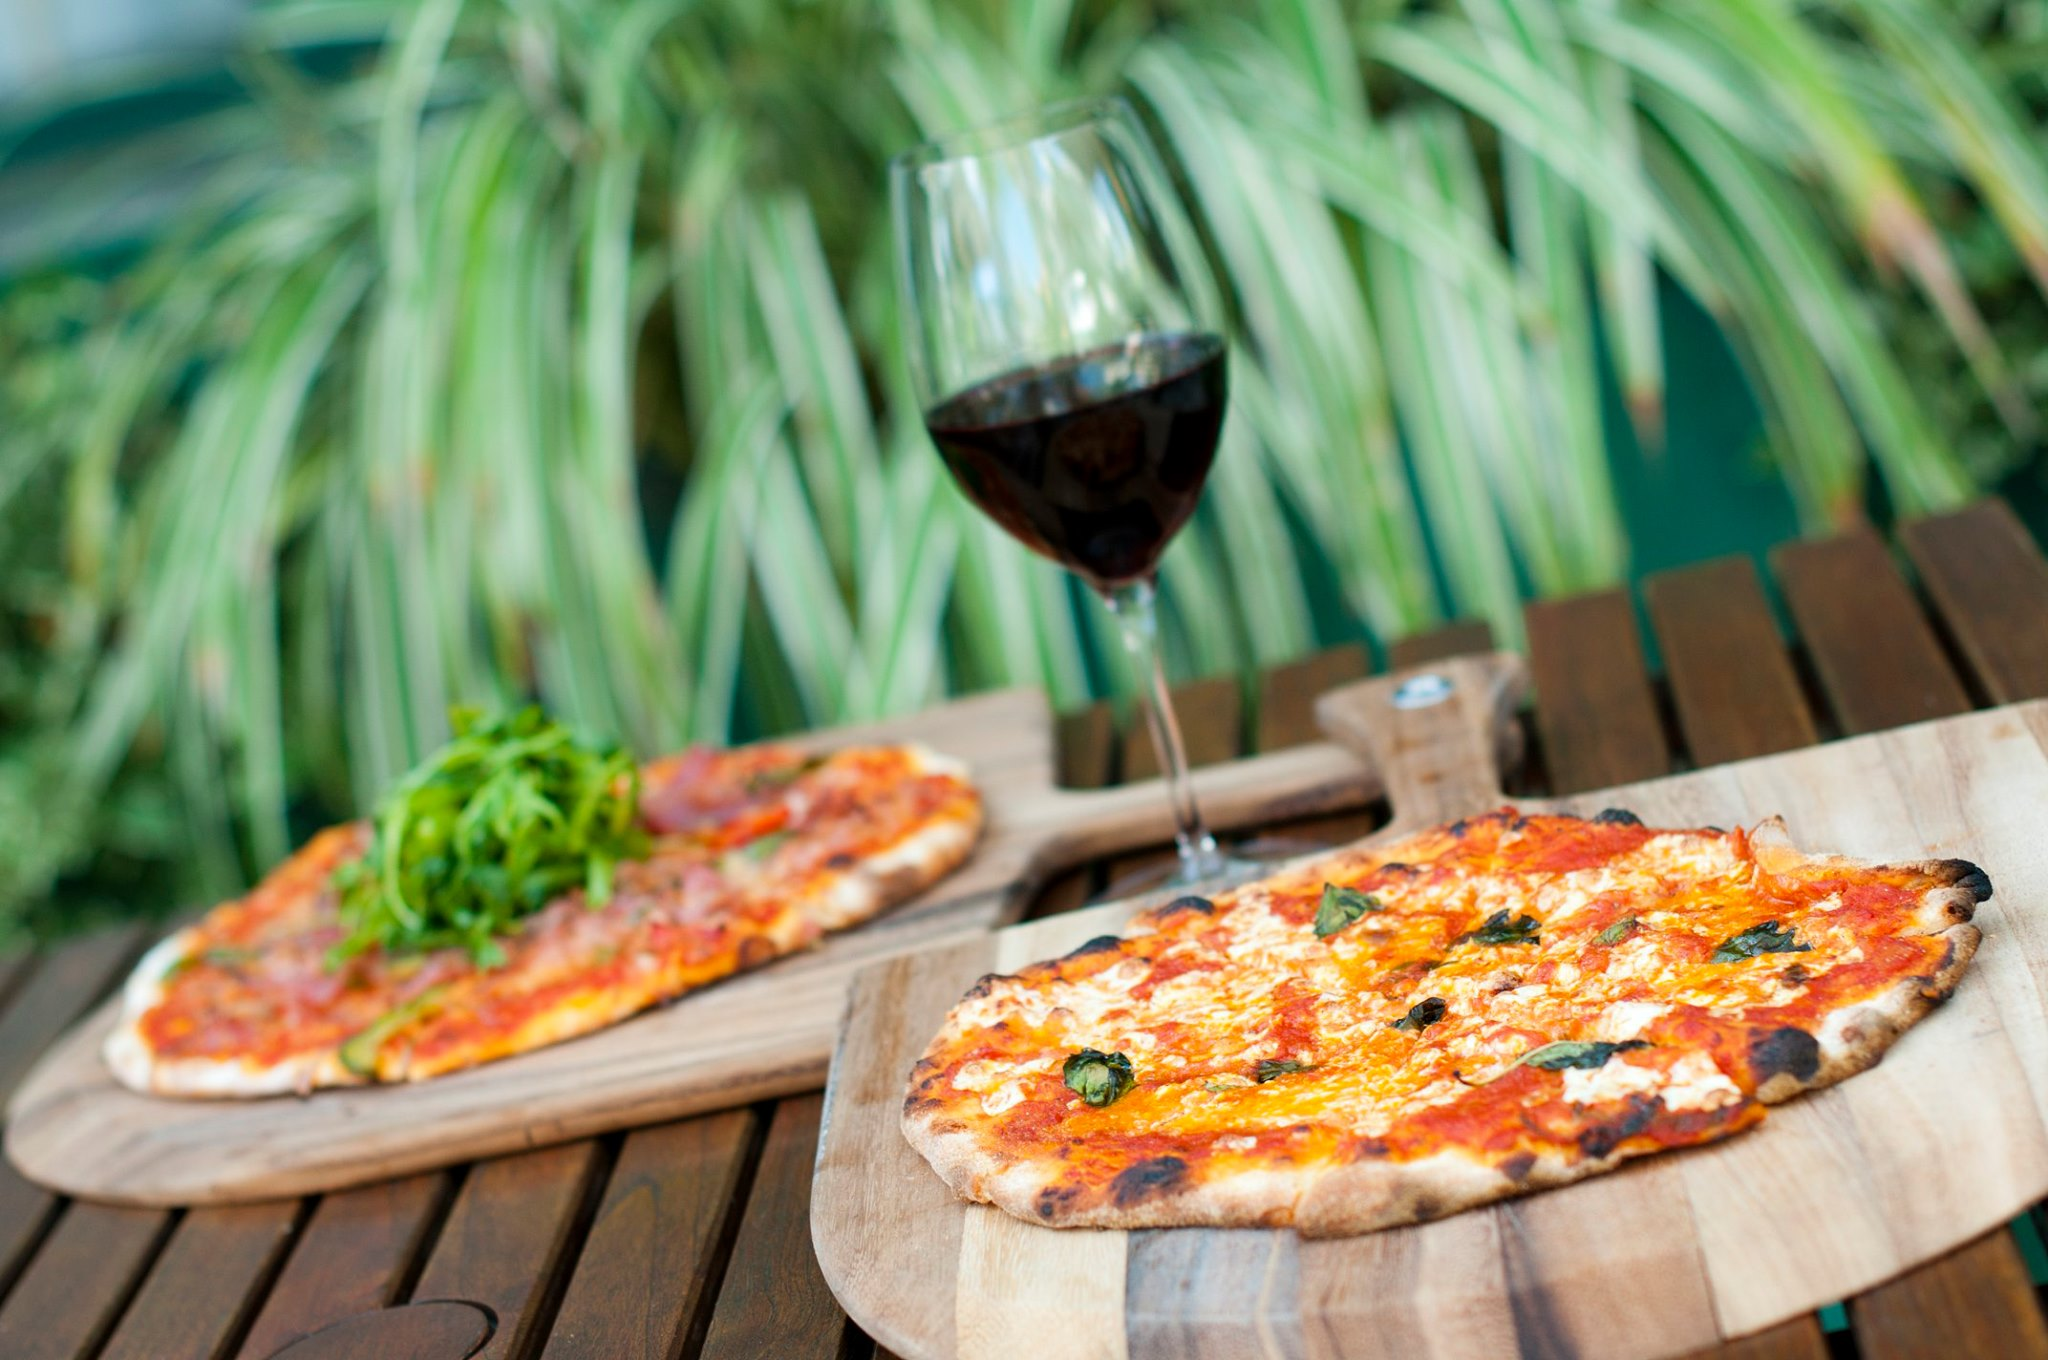 Brasserie Cayman Pizza and Wine